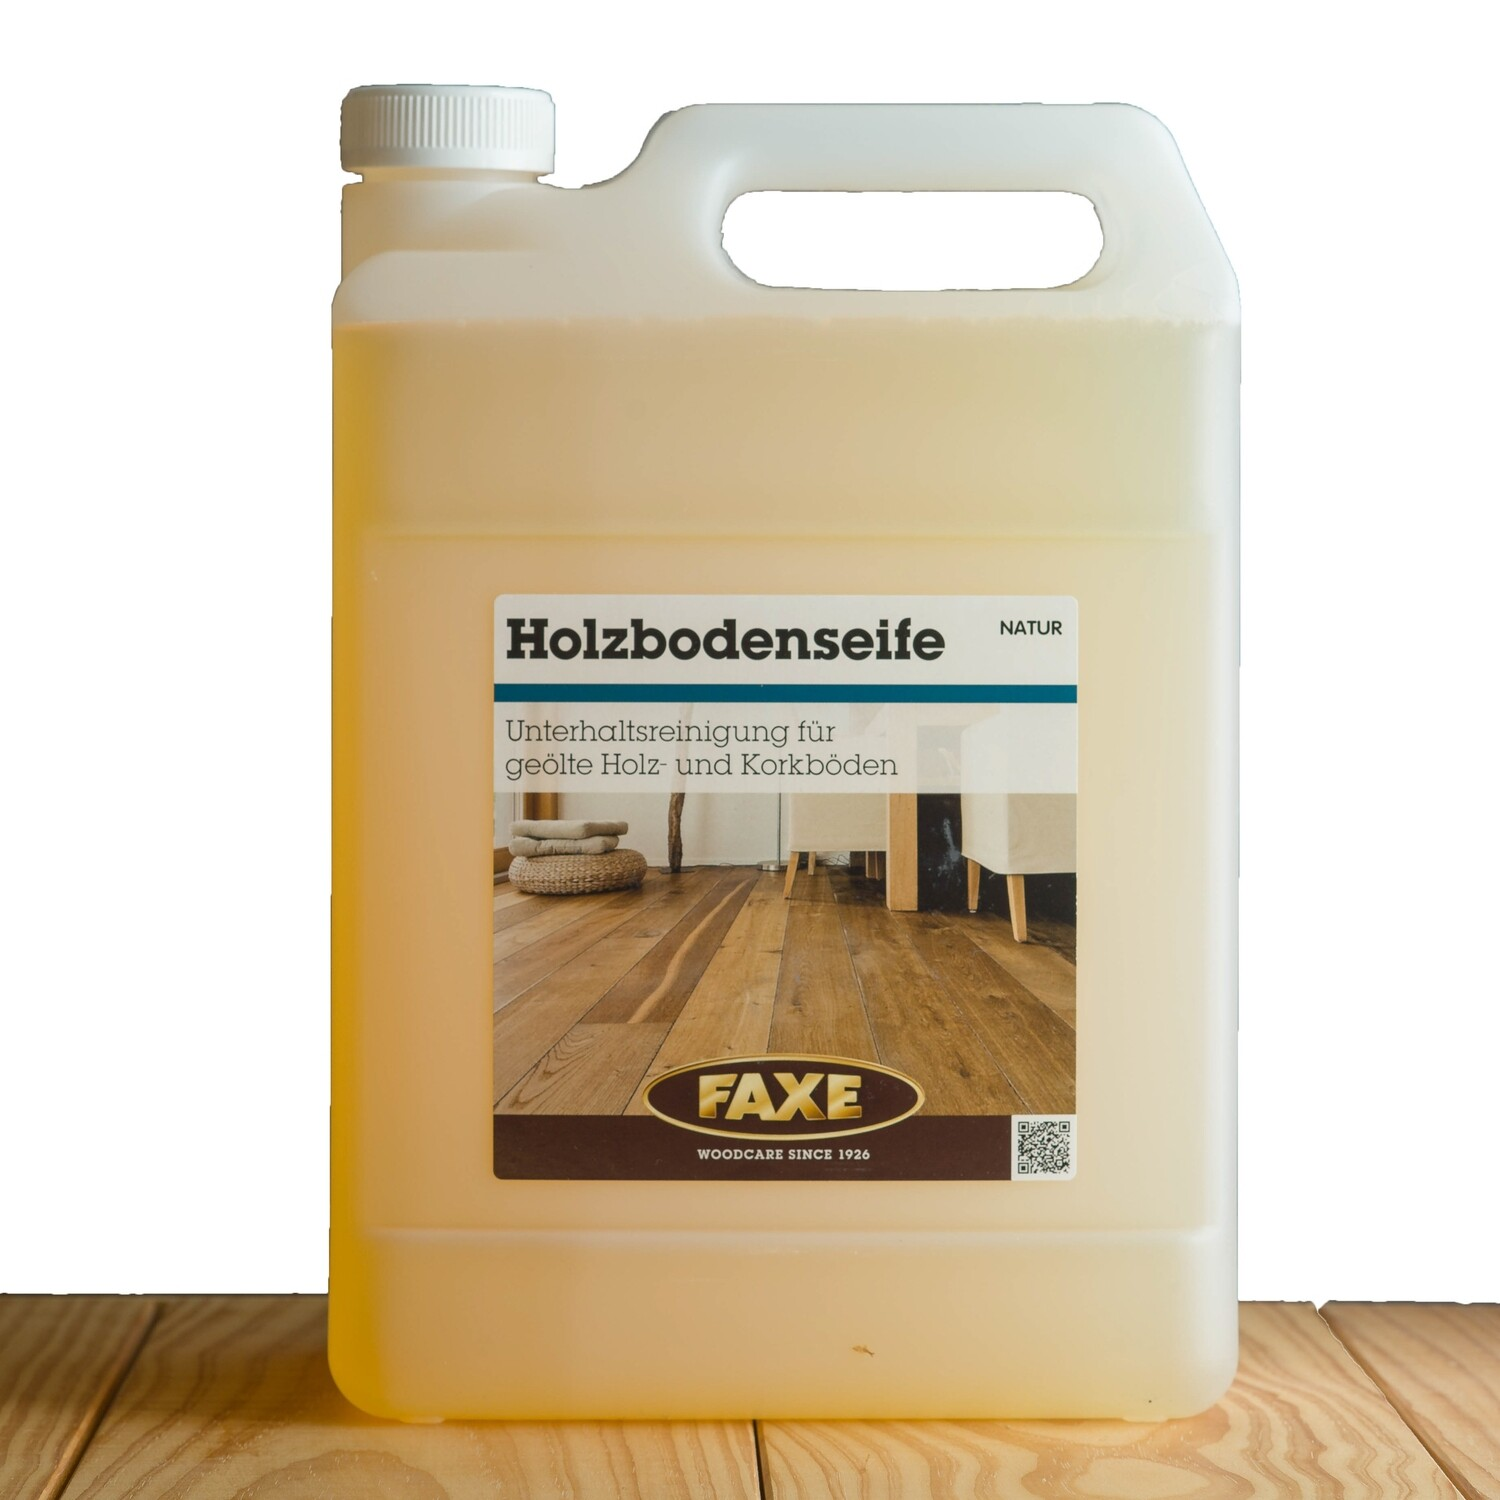 Faxe Holzbodenseife natur 5,0 l